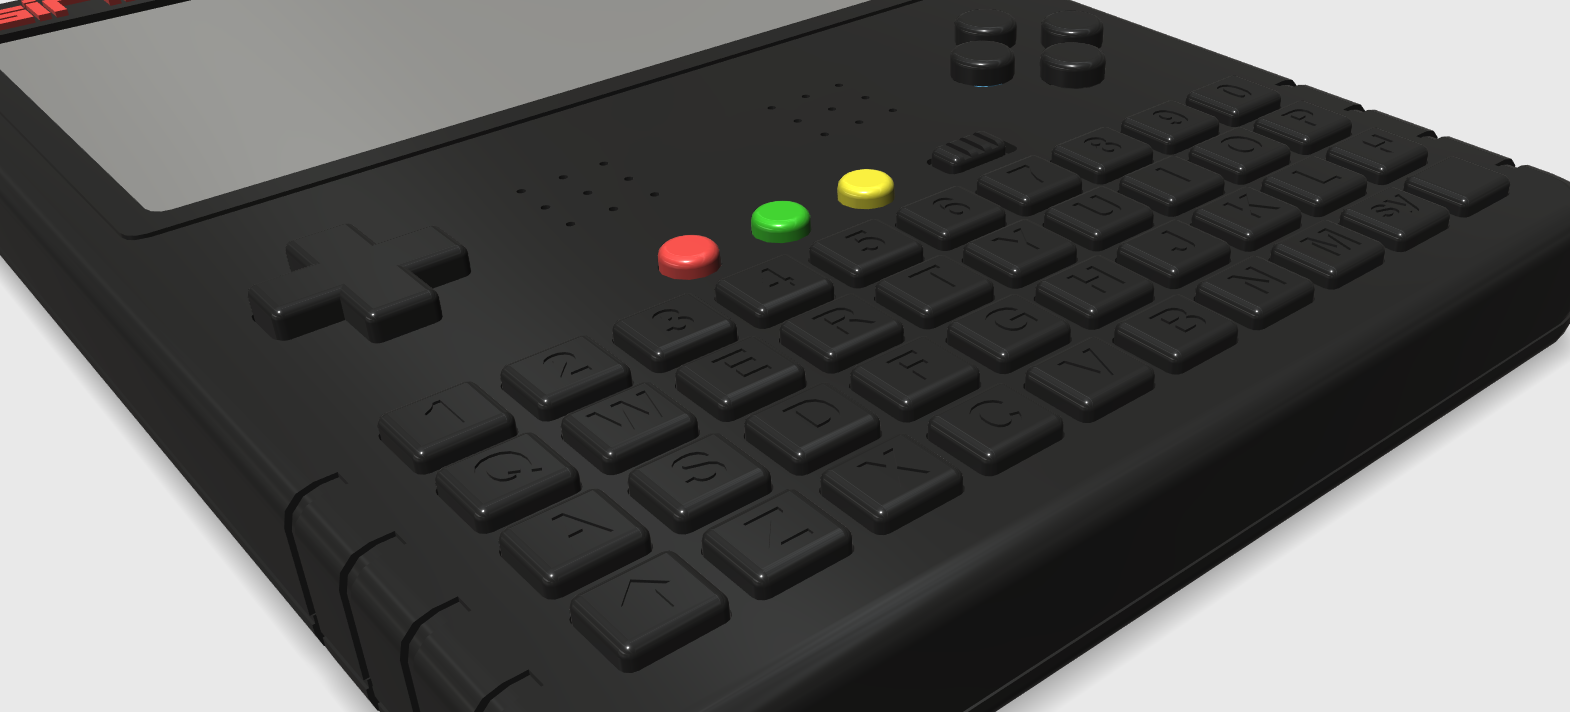 ZX Spectrum Next Handheld Design 3